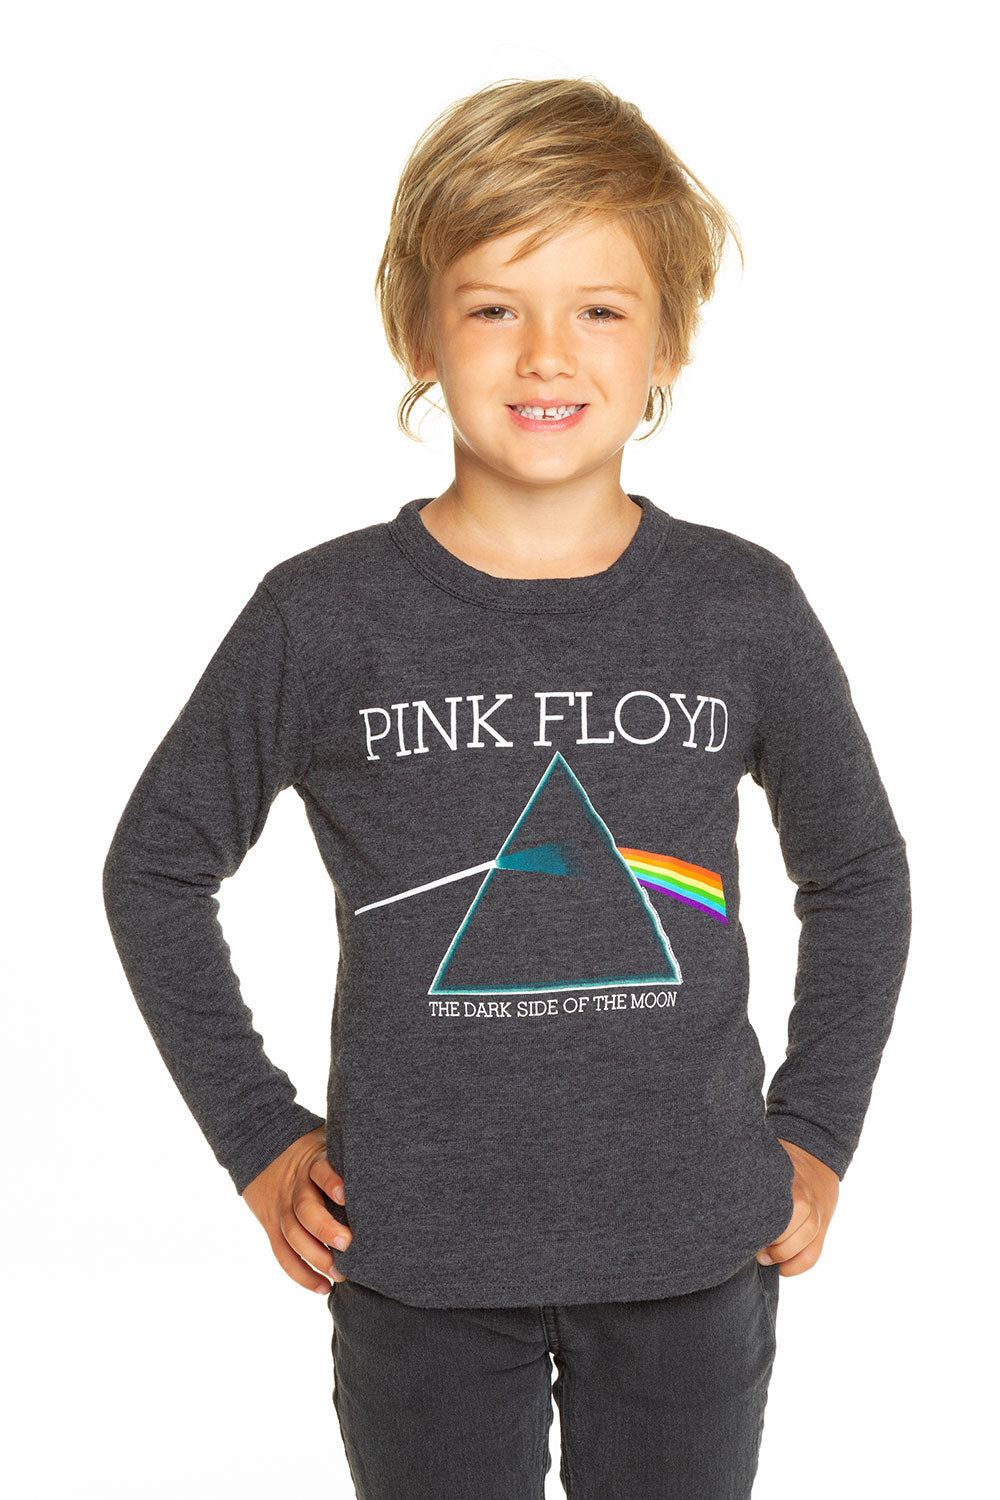 Pink Floyd - Dark Side Of The Moon BOYS chaserbrand4.myshopify.com